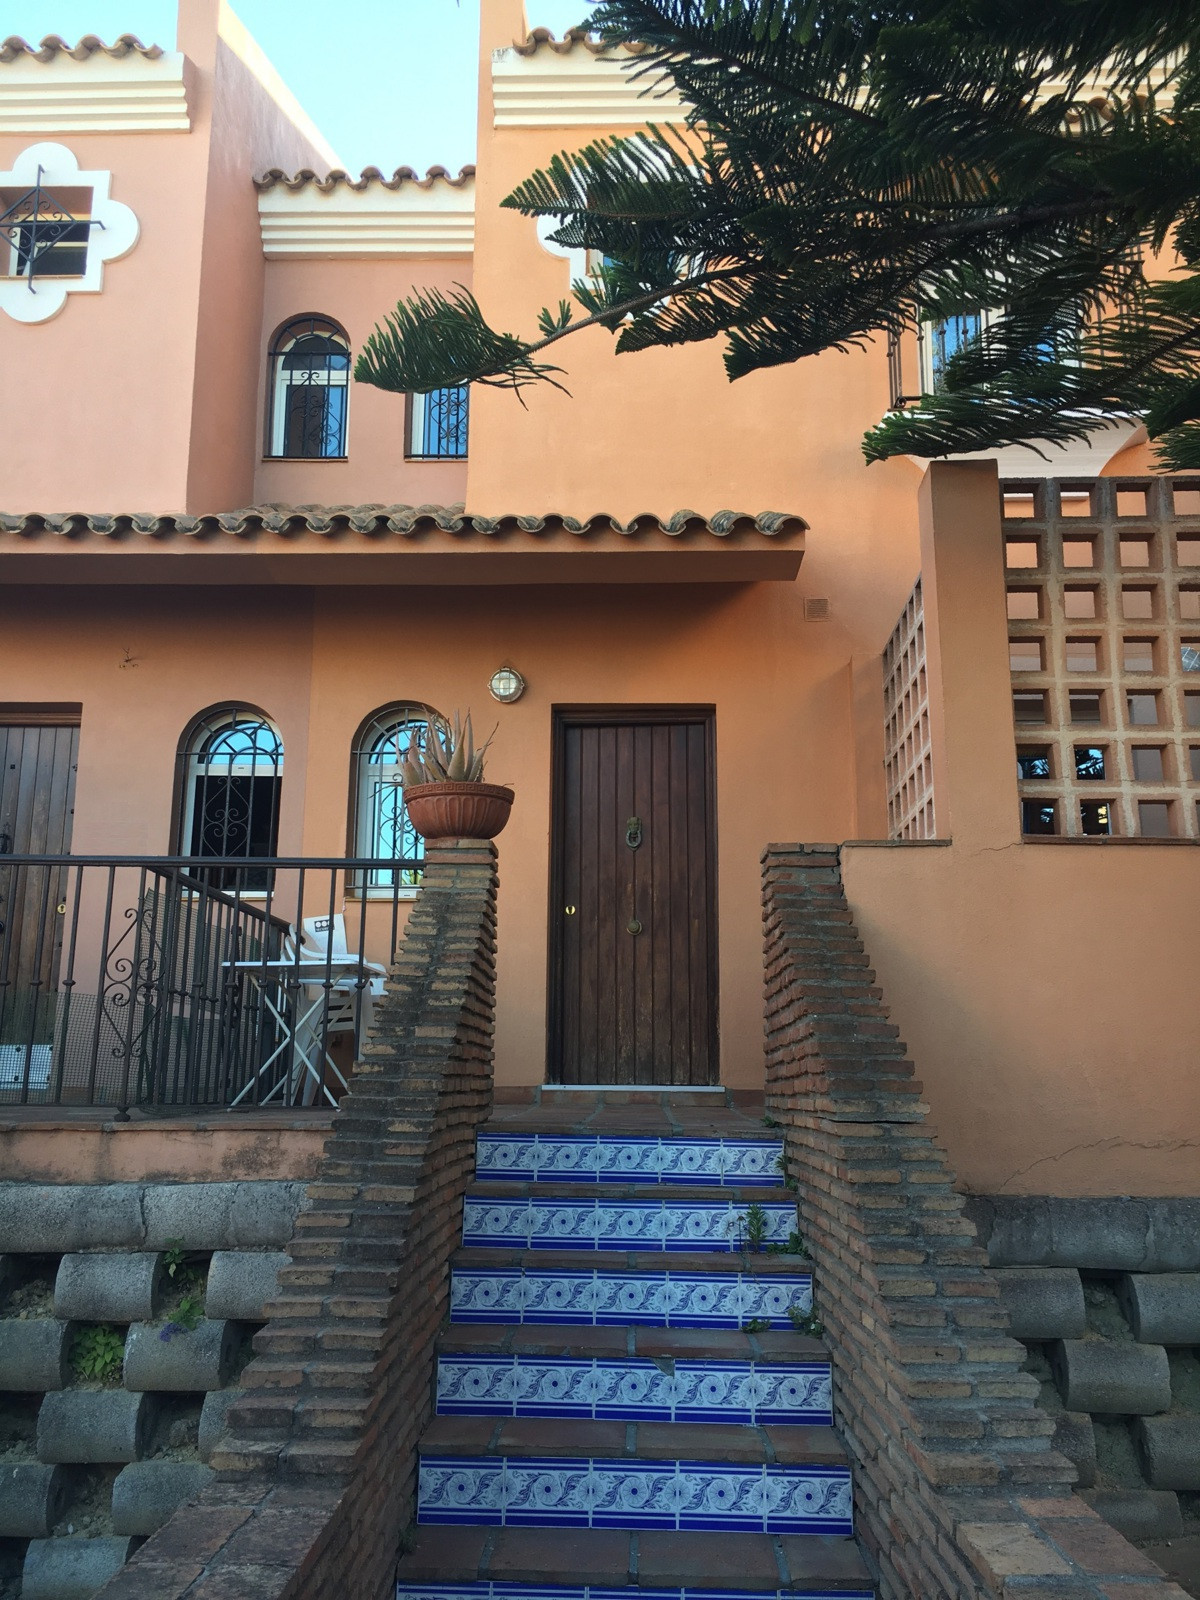 Magnificent townhouse in La Alcaidesa, of 135 m². Comprising 2 bedrooms with fitted wardrobes, 2 en ,Spain